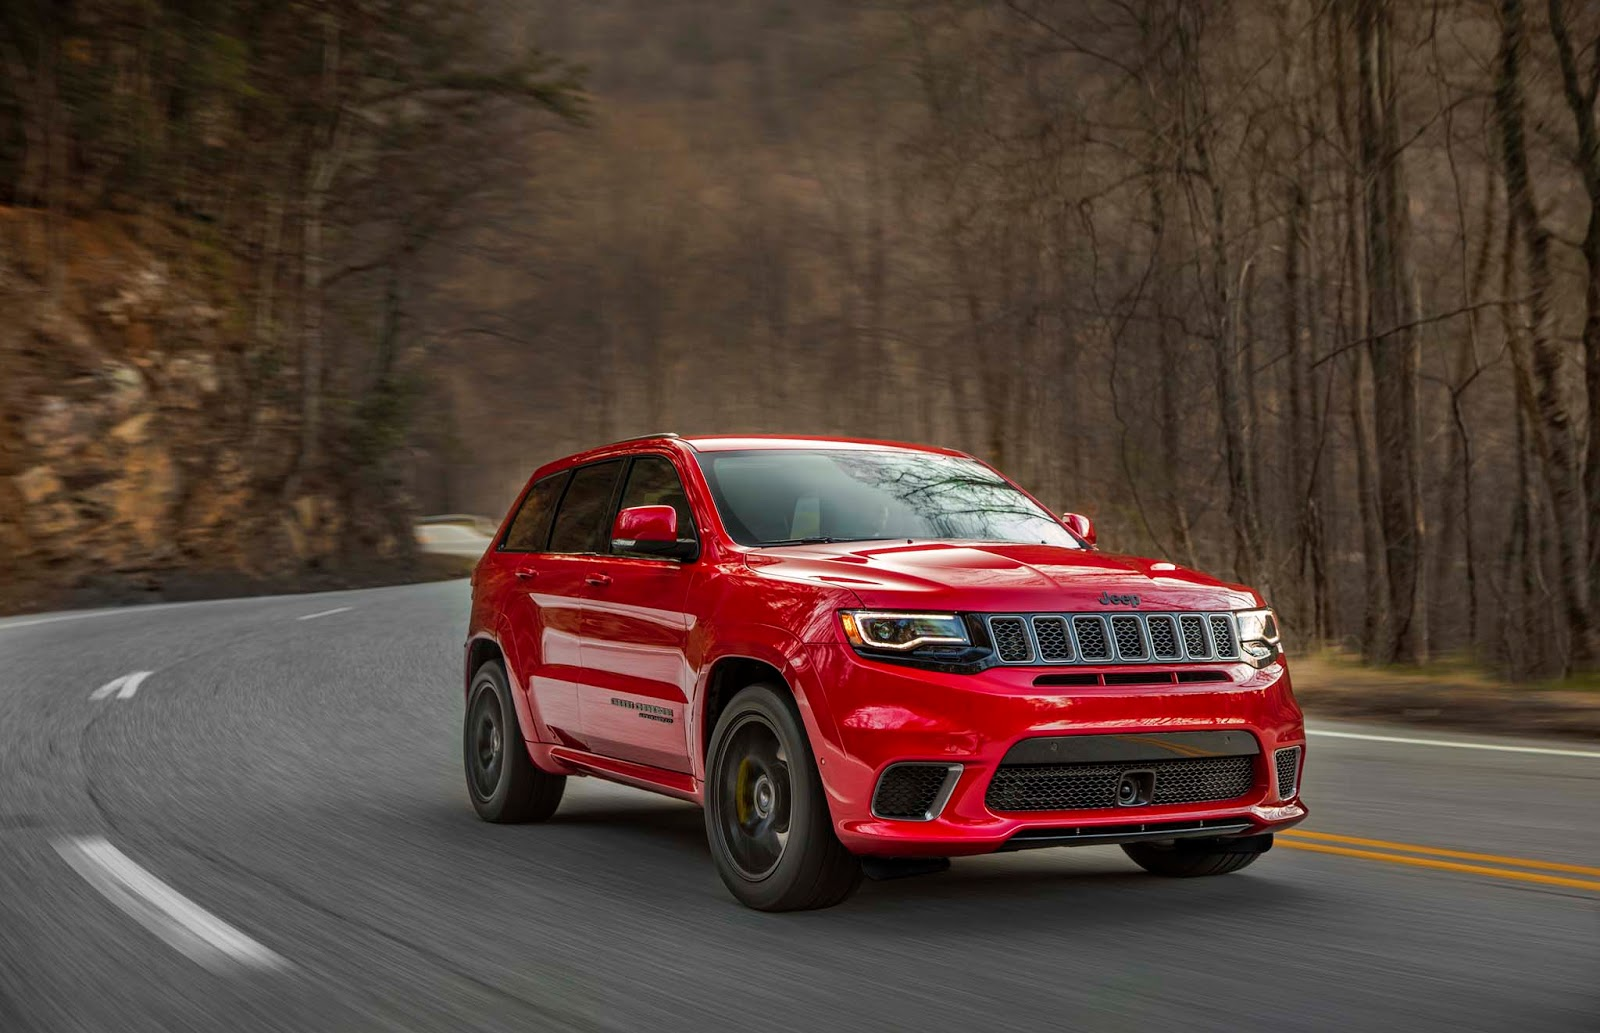 2018 jeep grand cherokee trackhawk is a 707 hp all wheel drive brute. Black Bedroom Furniture Sets. Home Design Ideas